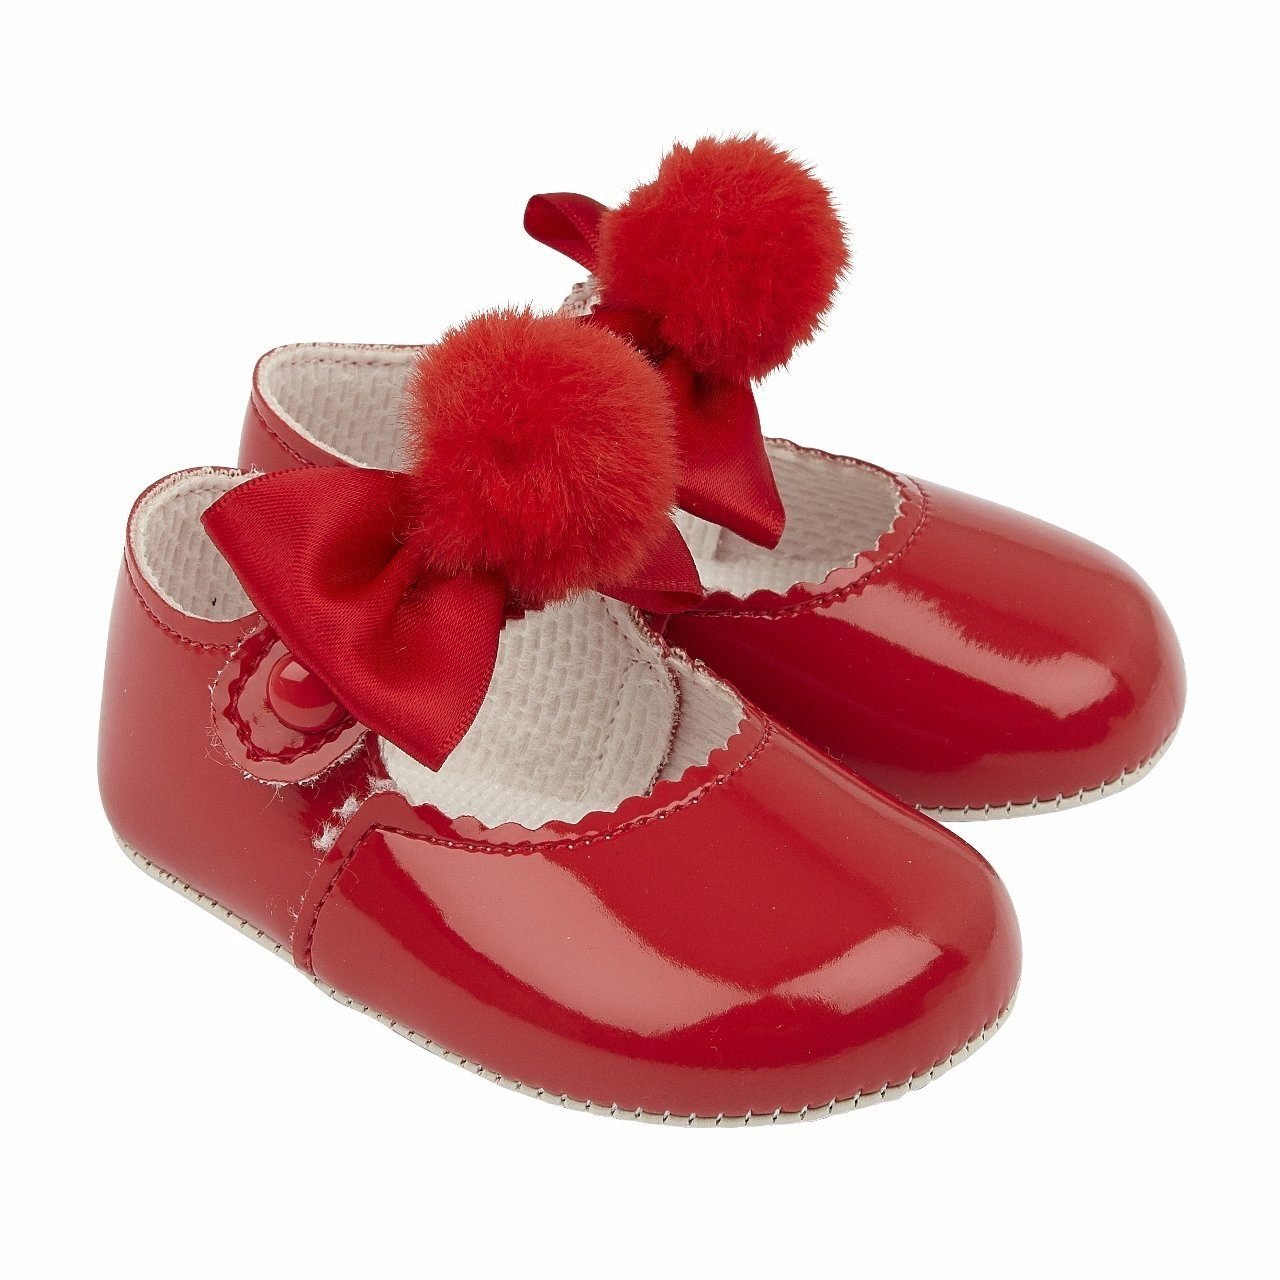 Red Pom Pom Soft Sole Shoes